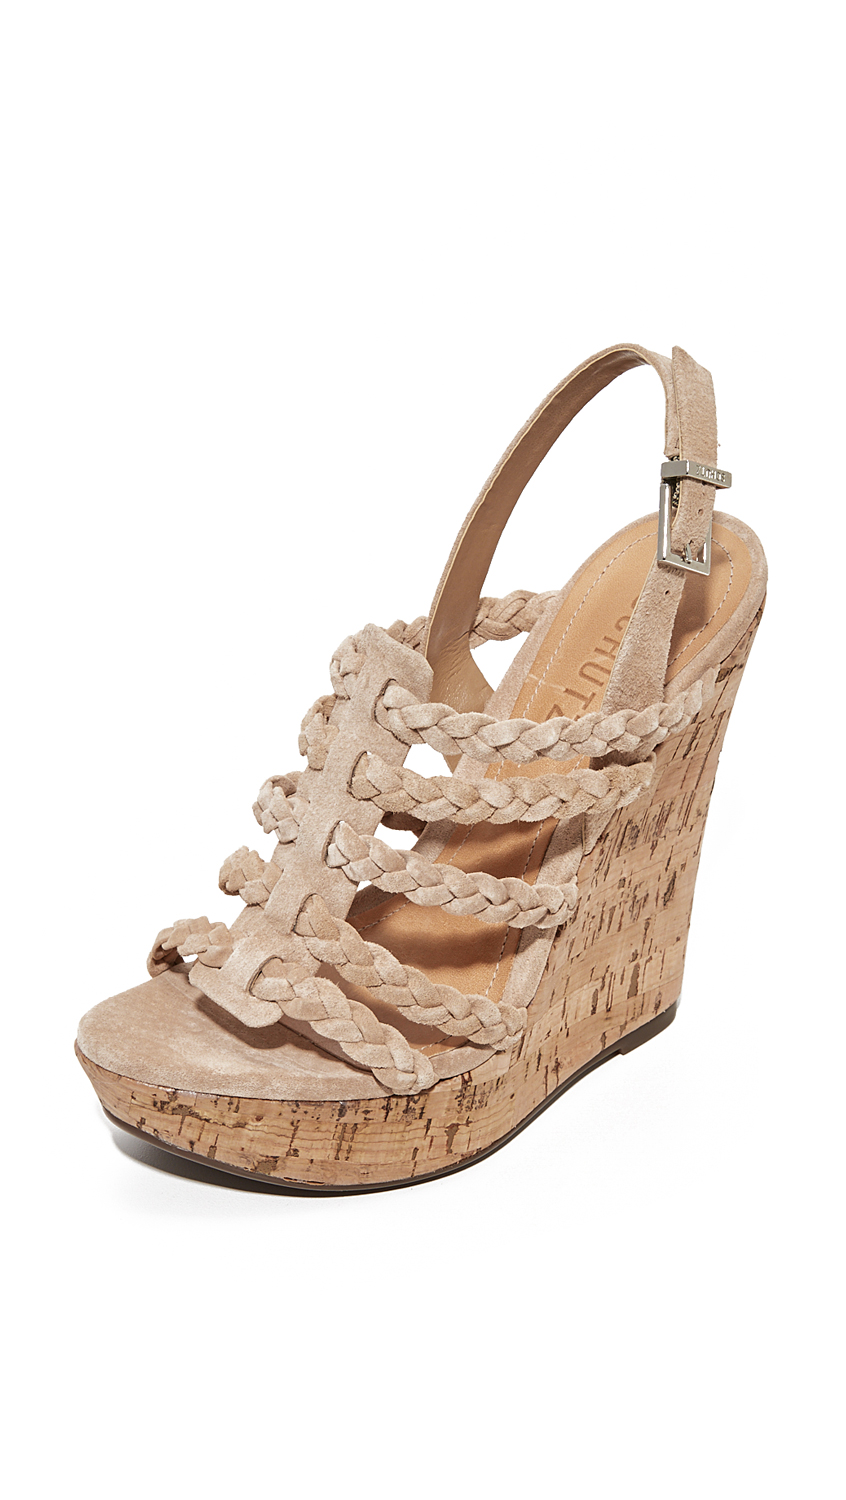 Schutz Abigally Wedge Sandals - Amber Light